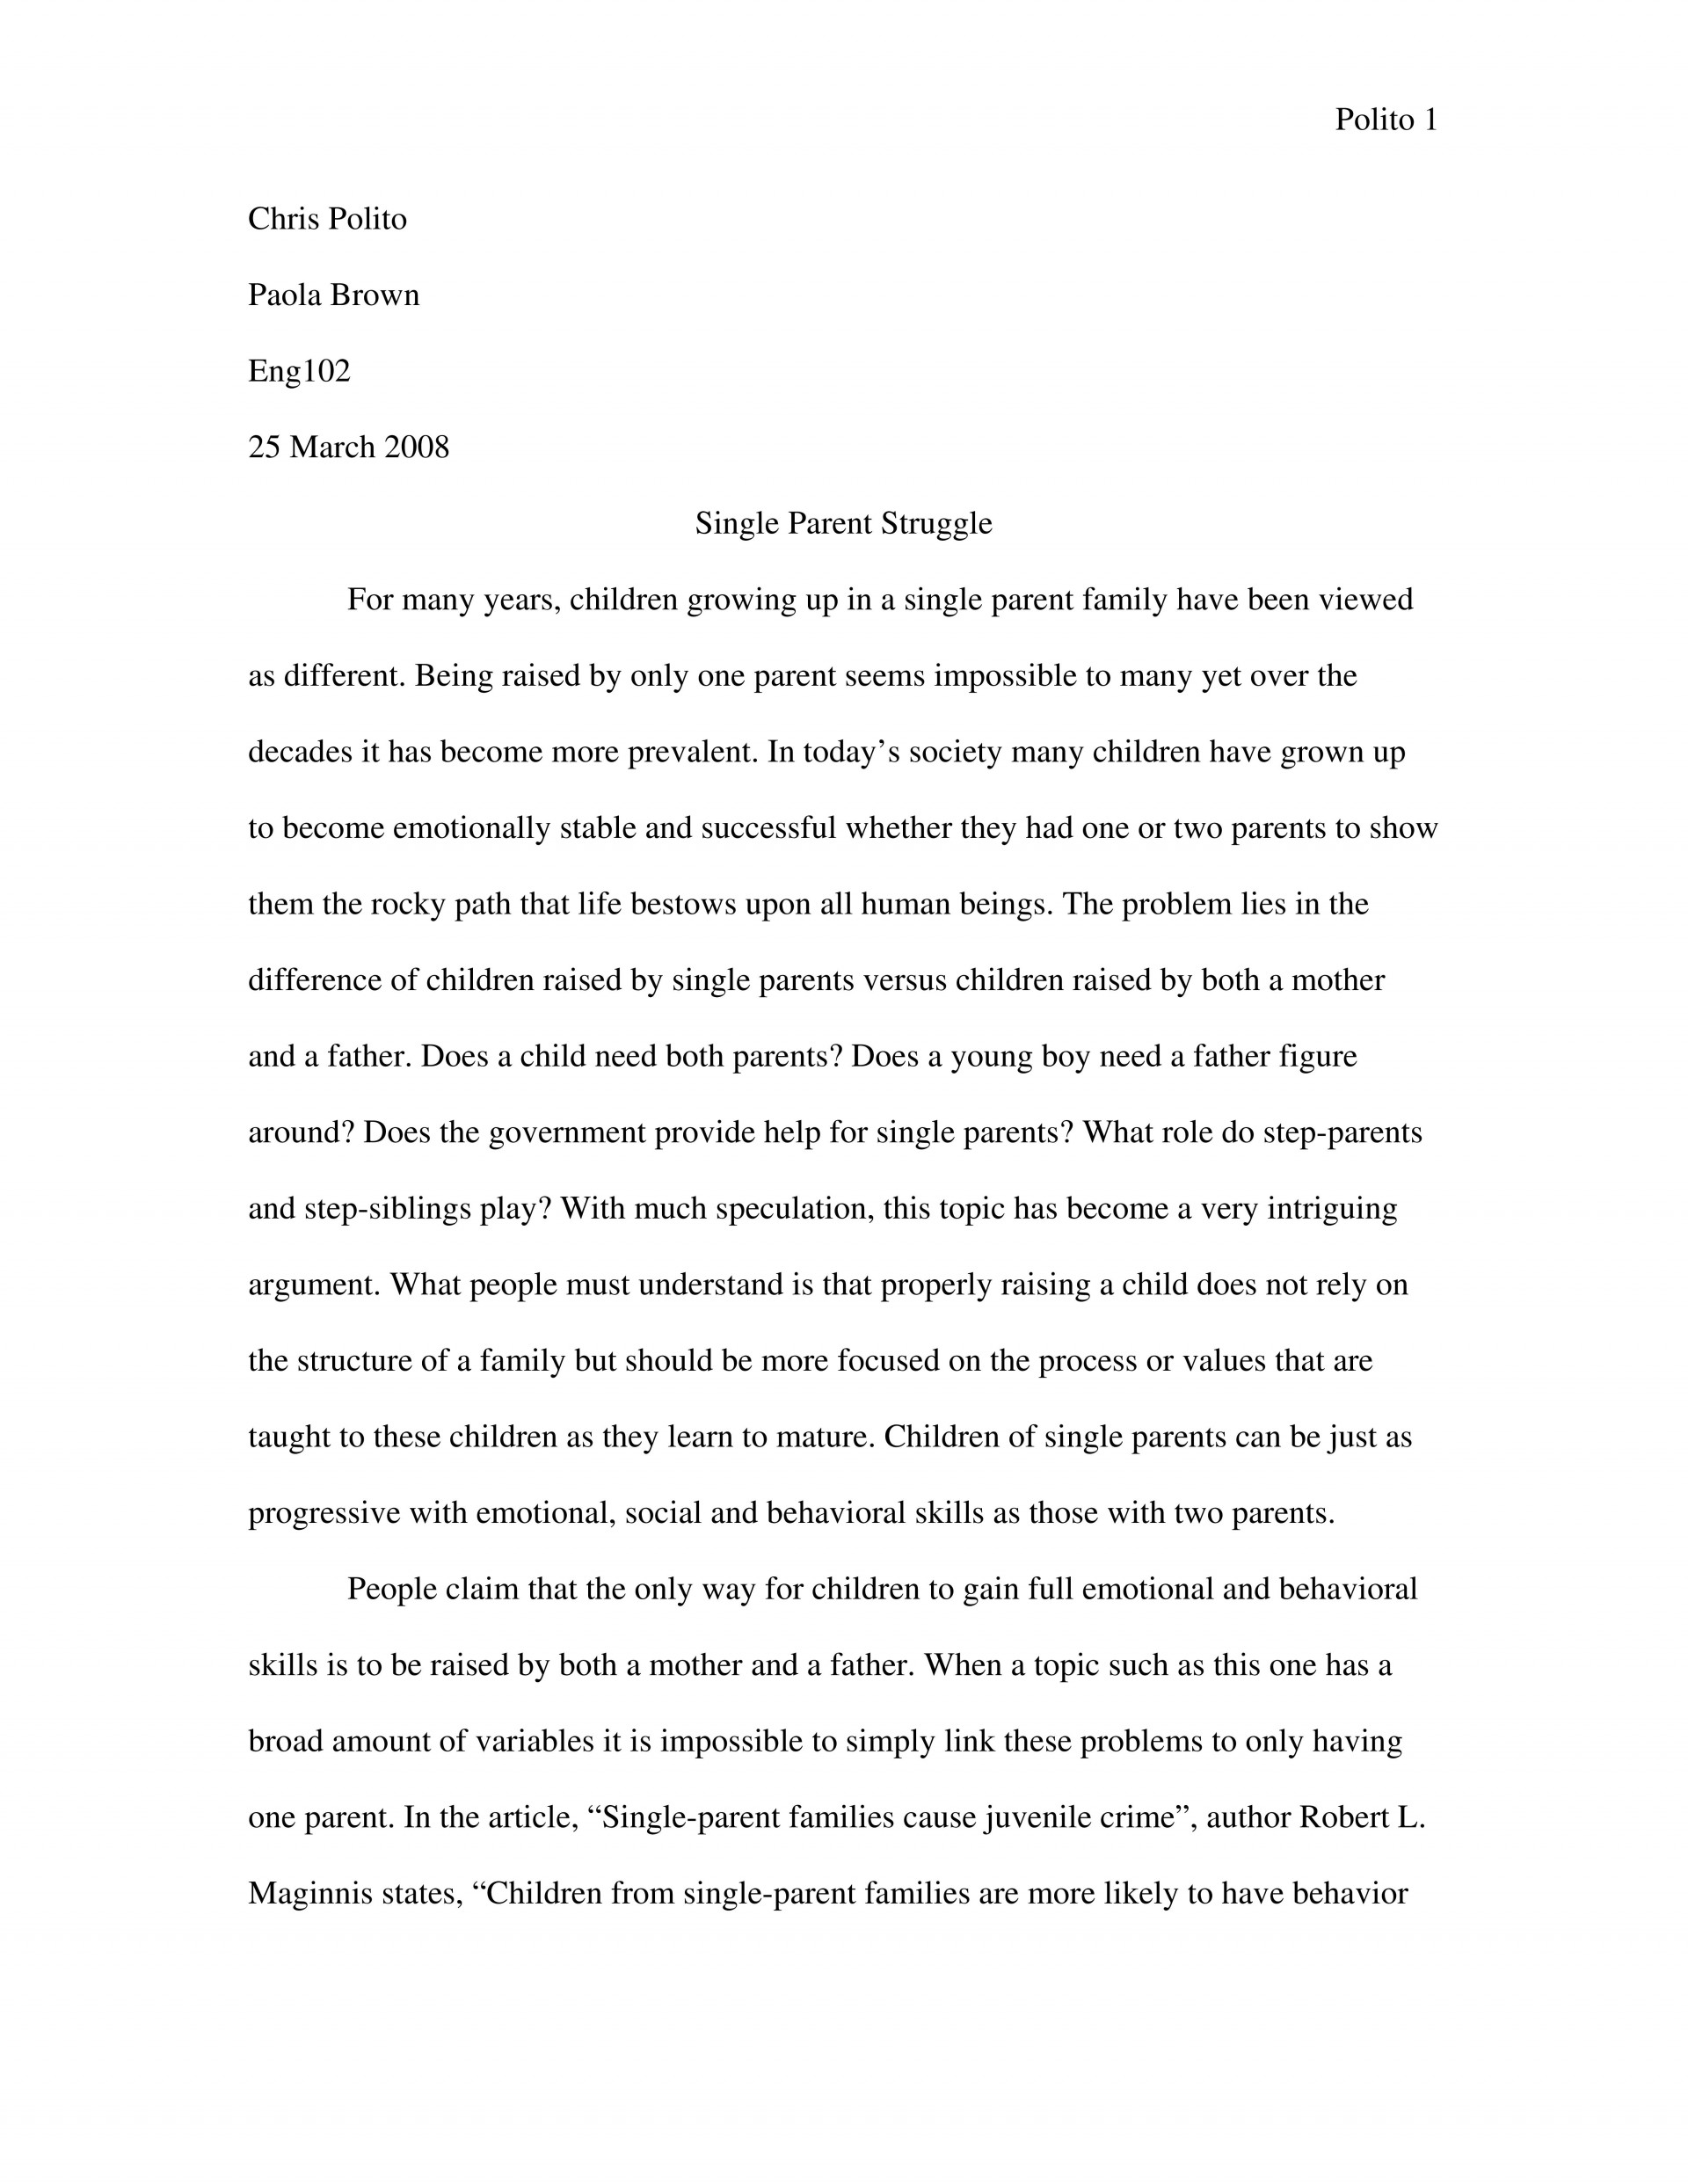 008 Essay Example Expository Samples Sample 2 Impressive Topics Grade 5 O Level Essays For High School Students 1920